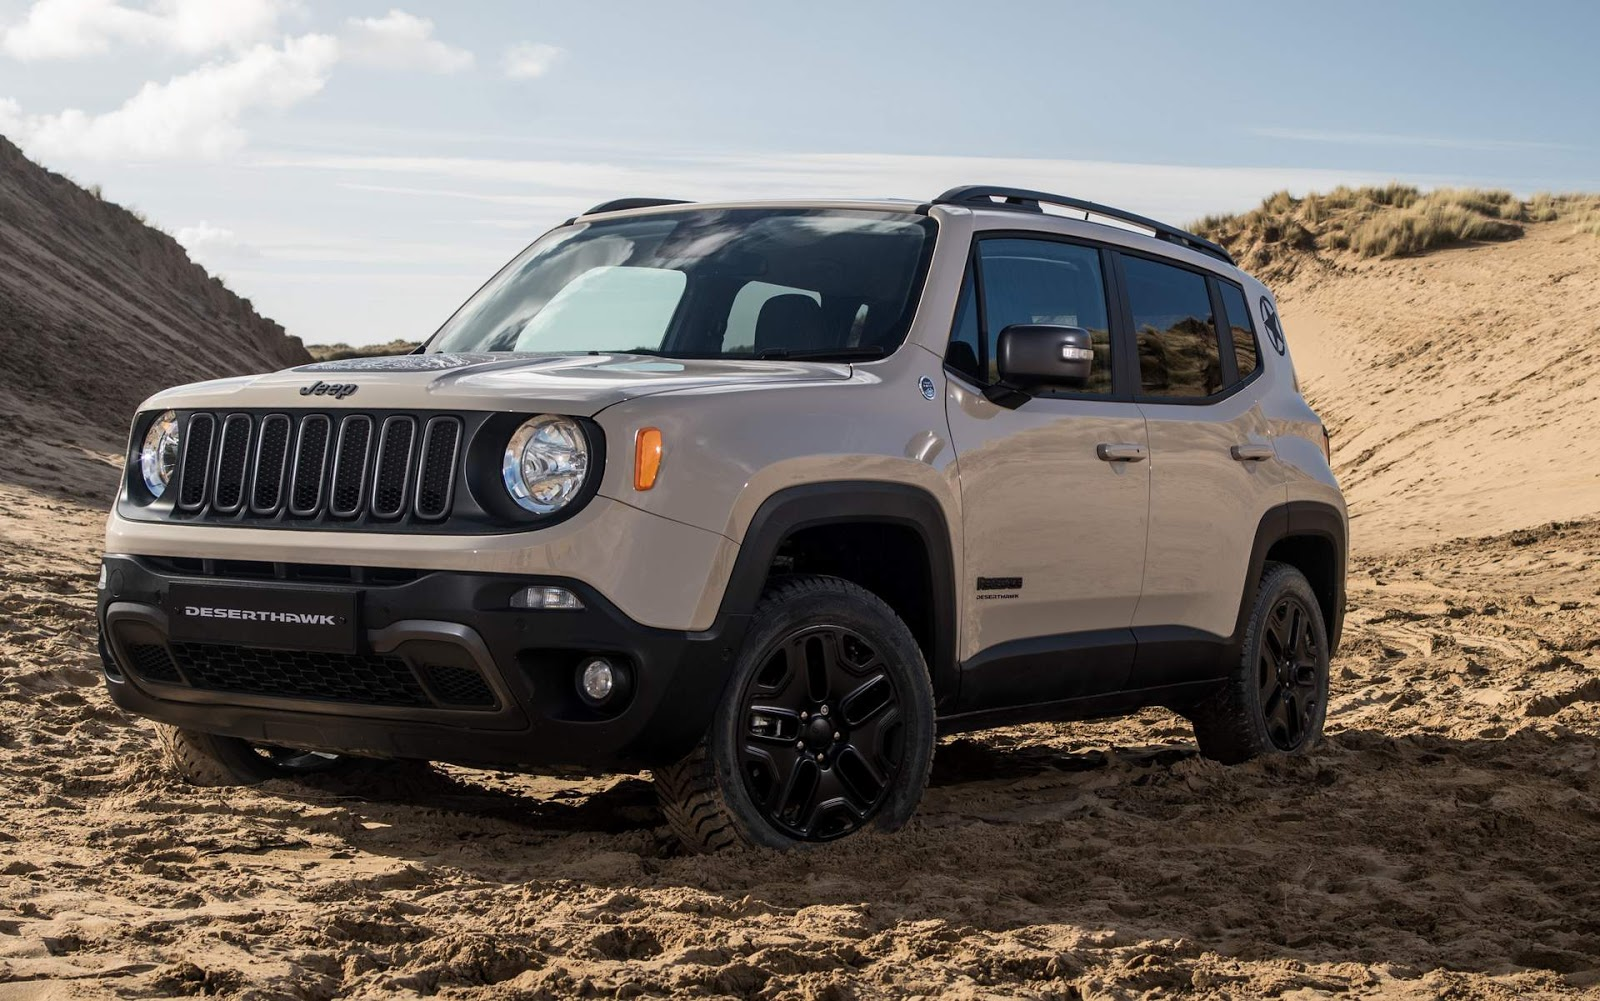 jeep renegade desert hawk s rie especial limitada car blog br. Black Bedroom Furniture Sets. Home Design Ideas